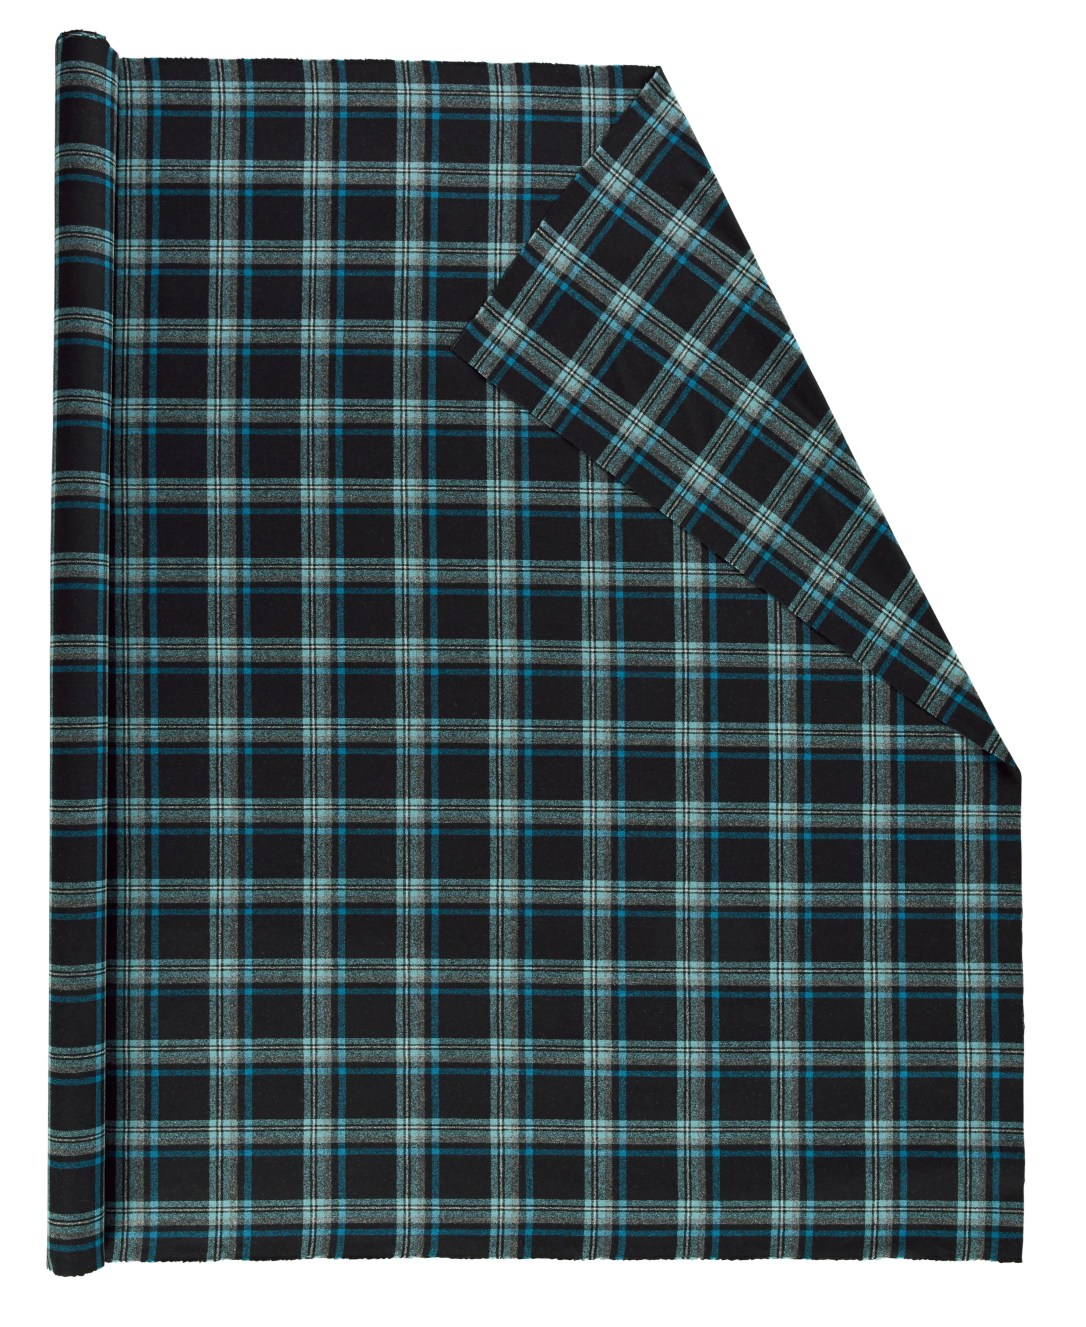 Roll of Pendleton wool fabric in black and blue plaid.